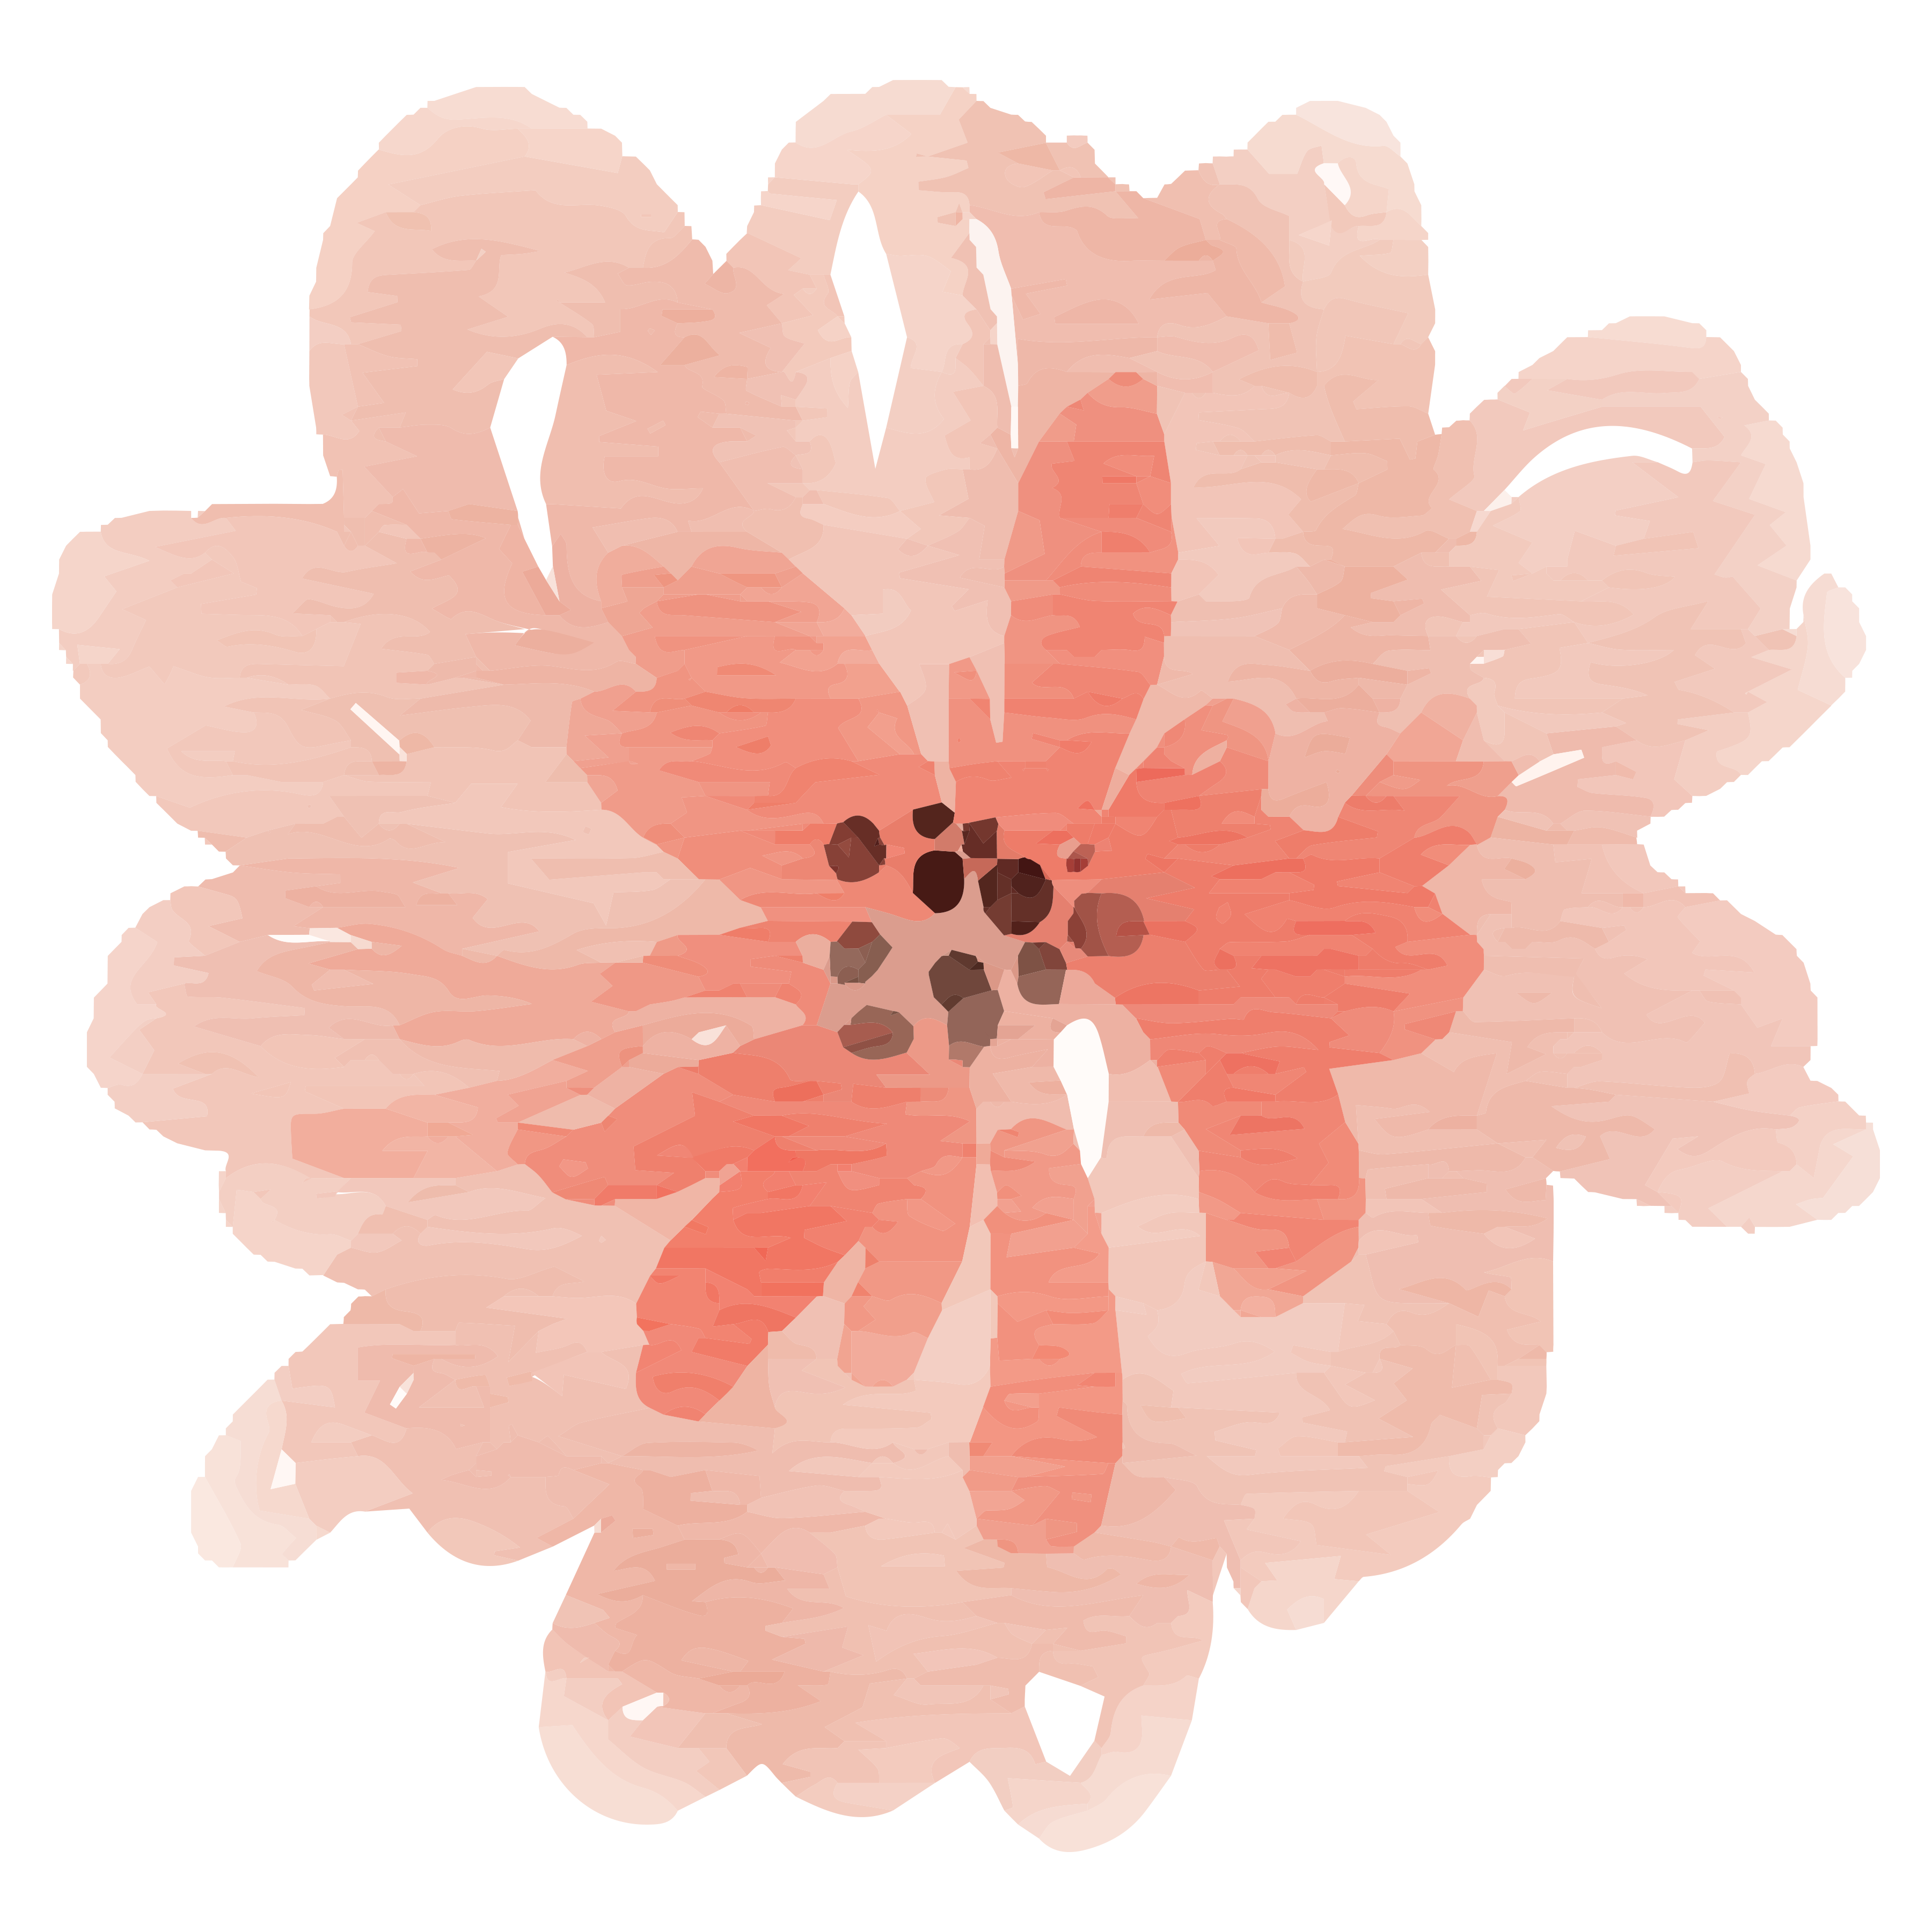 Watercolor Flowers Png Vector Psd And Clipart With: Free Watercolor Flower Images